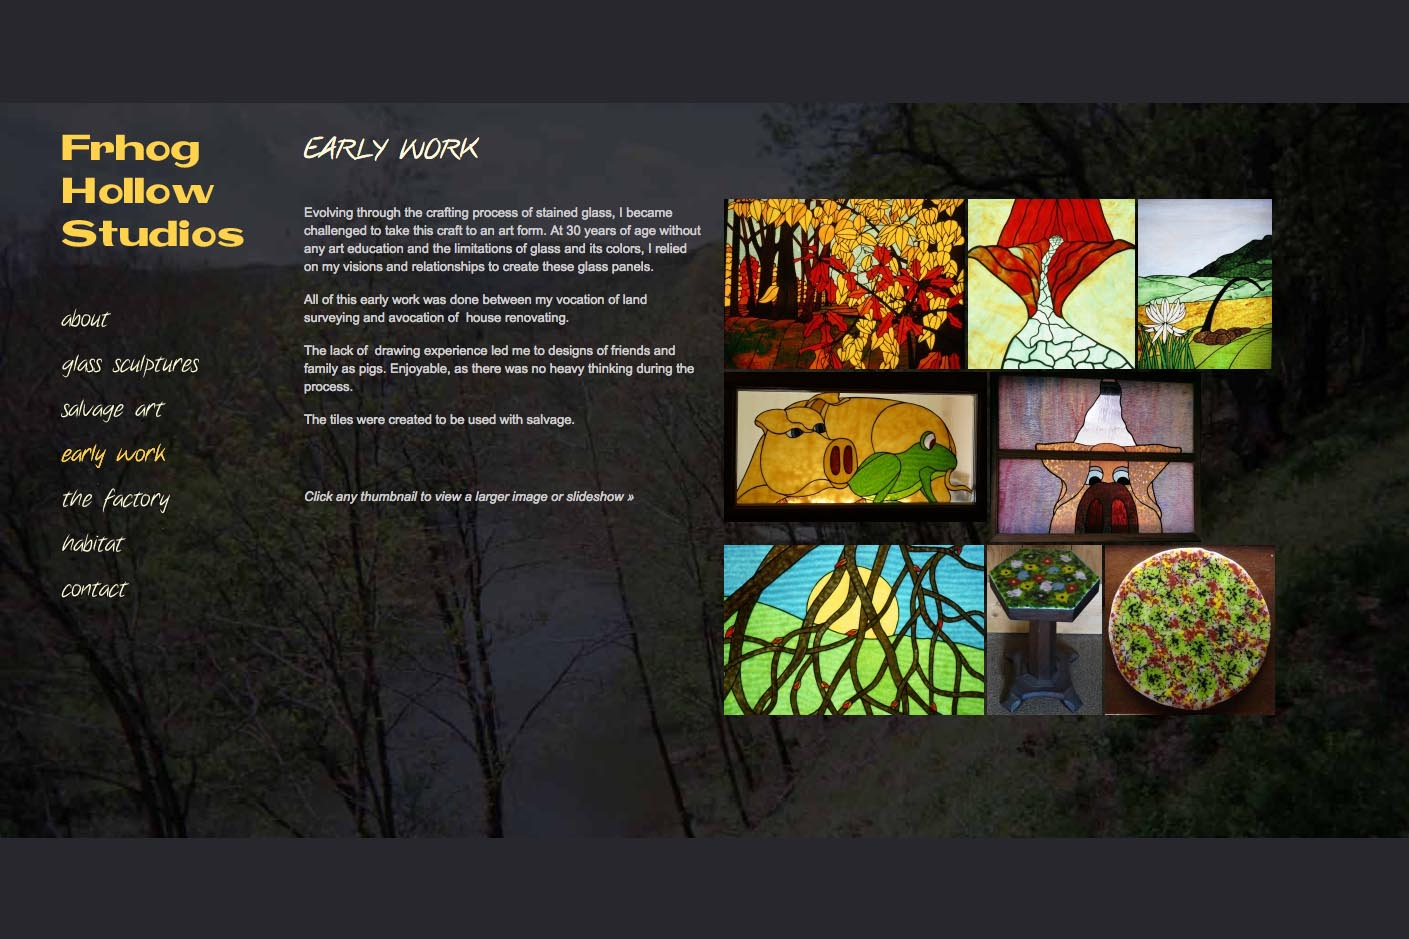 web design for a glass sculpture artist - early work page